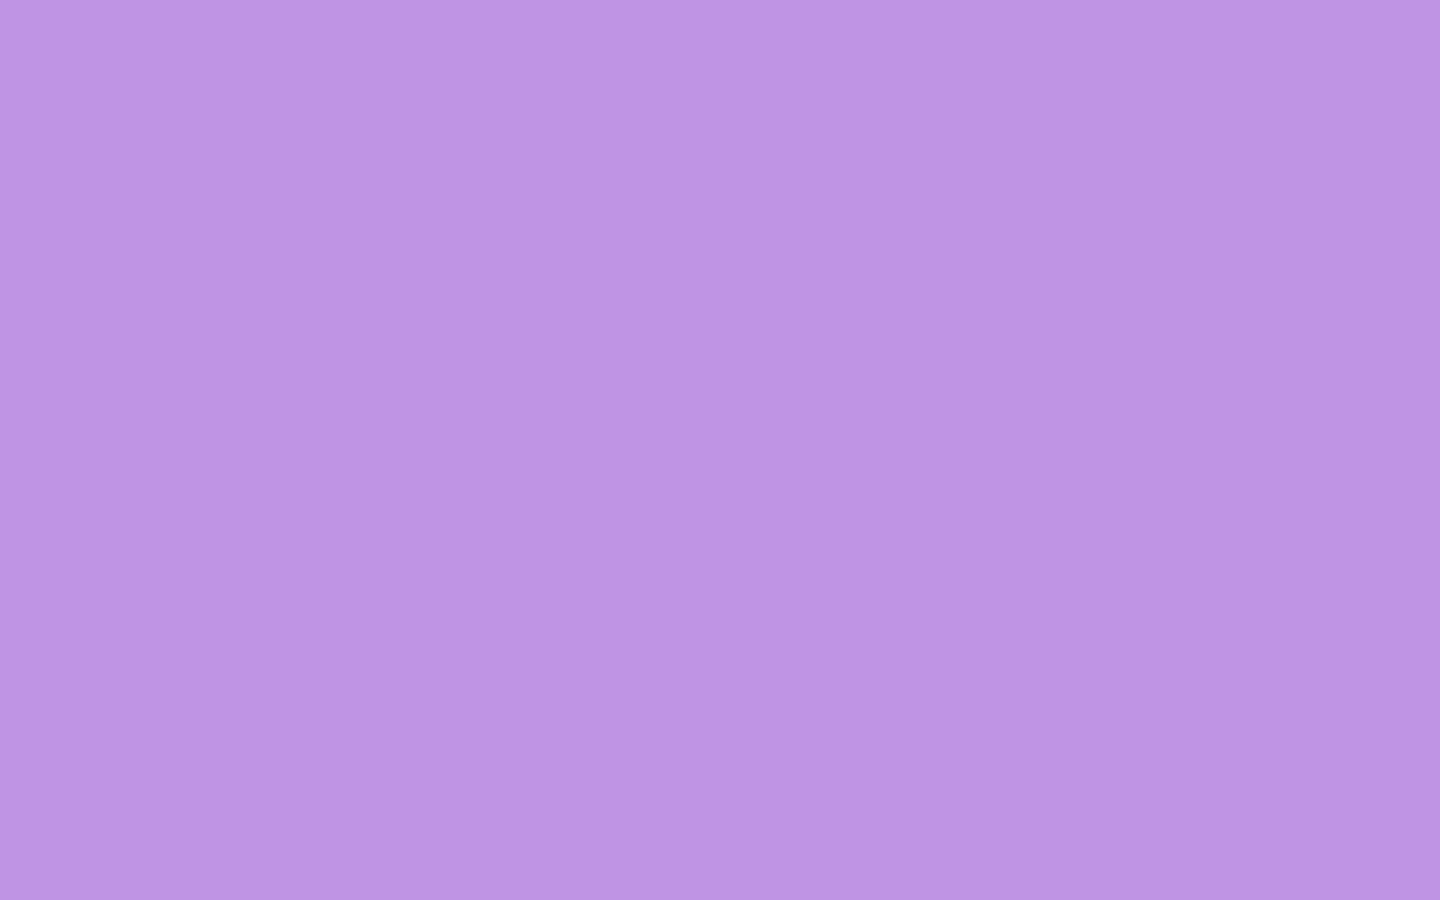 1440x900 Bright Lavender Solid Color Background